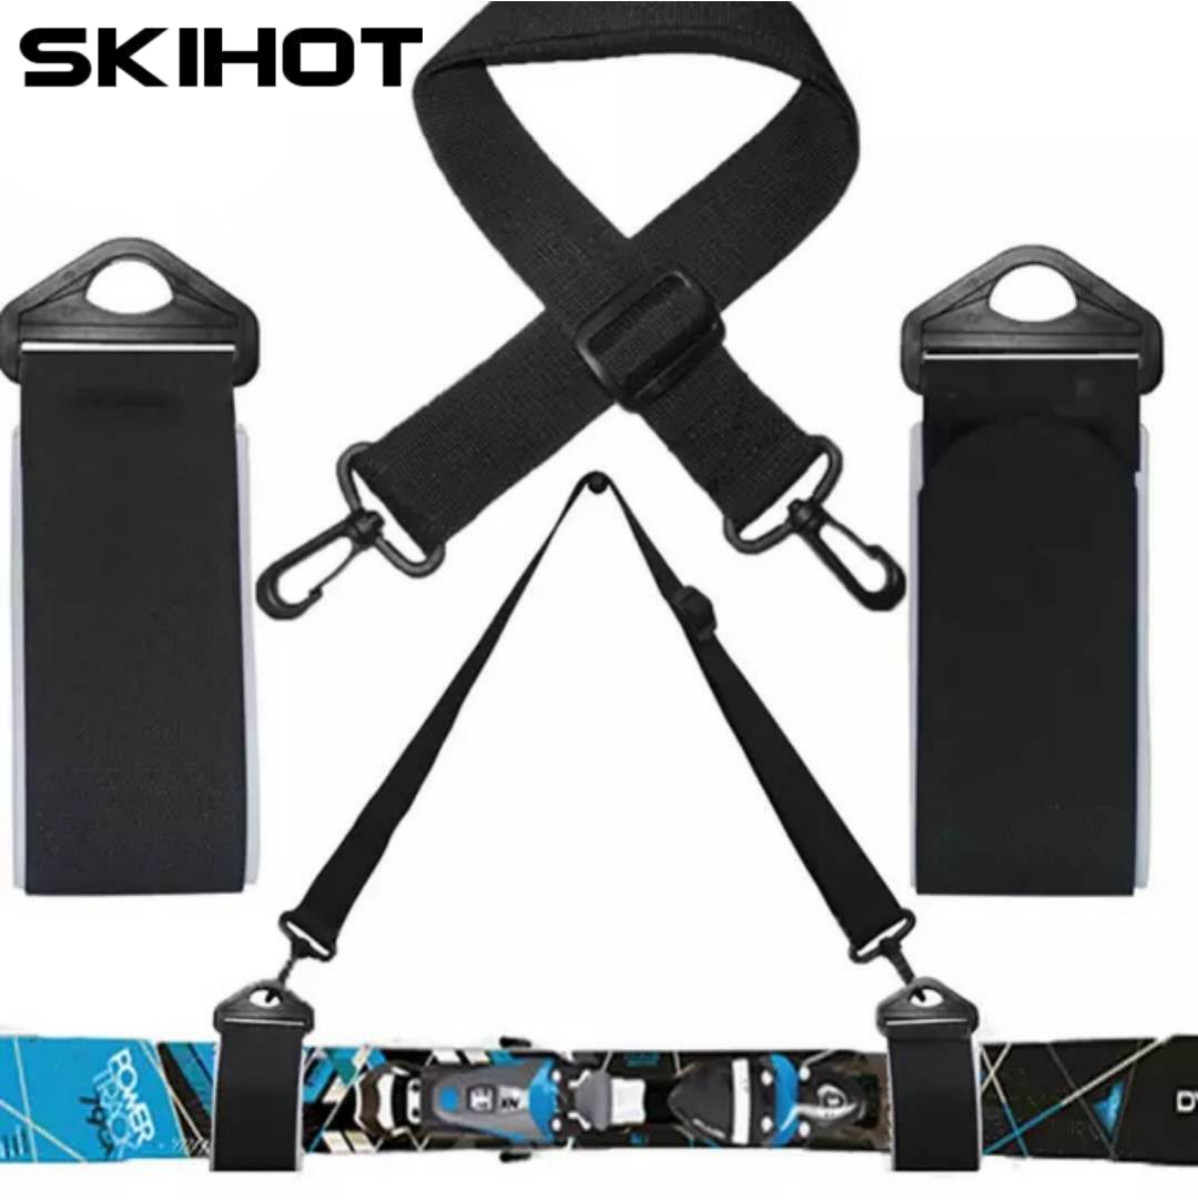 SKIHOT Snowboard Pole Shoulder Strap With Bode Hook Adjustable Nylon Ski Handle Strap